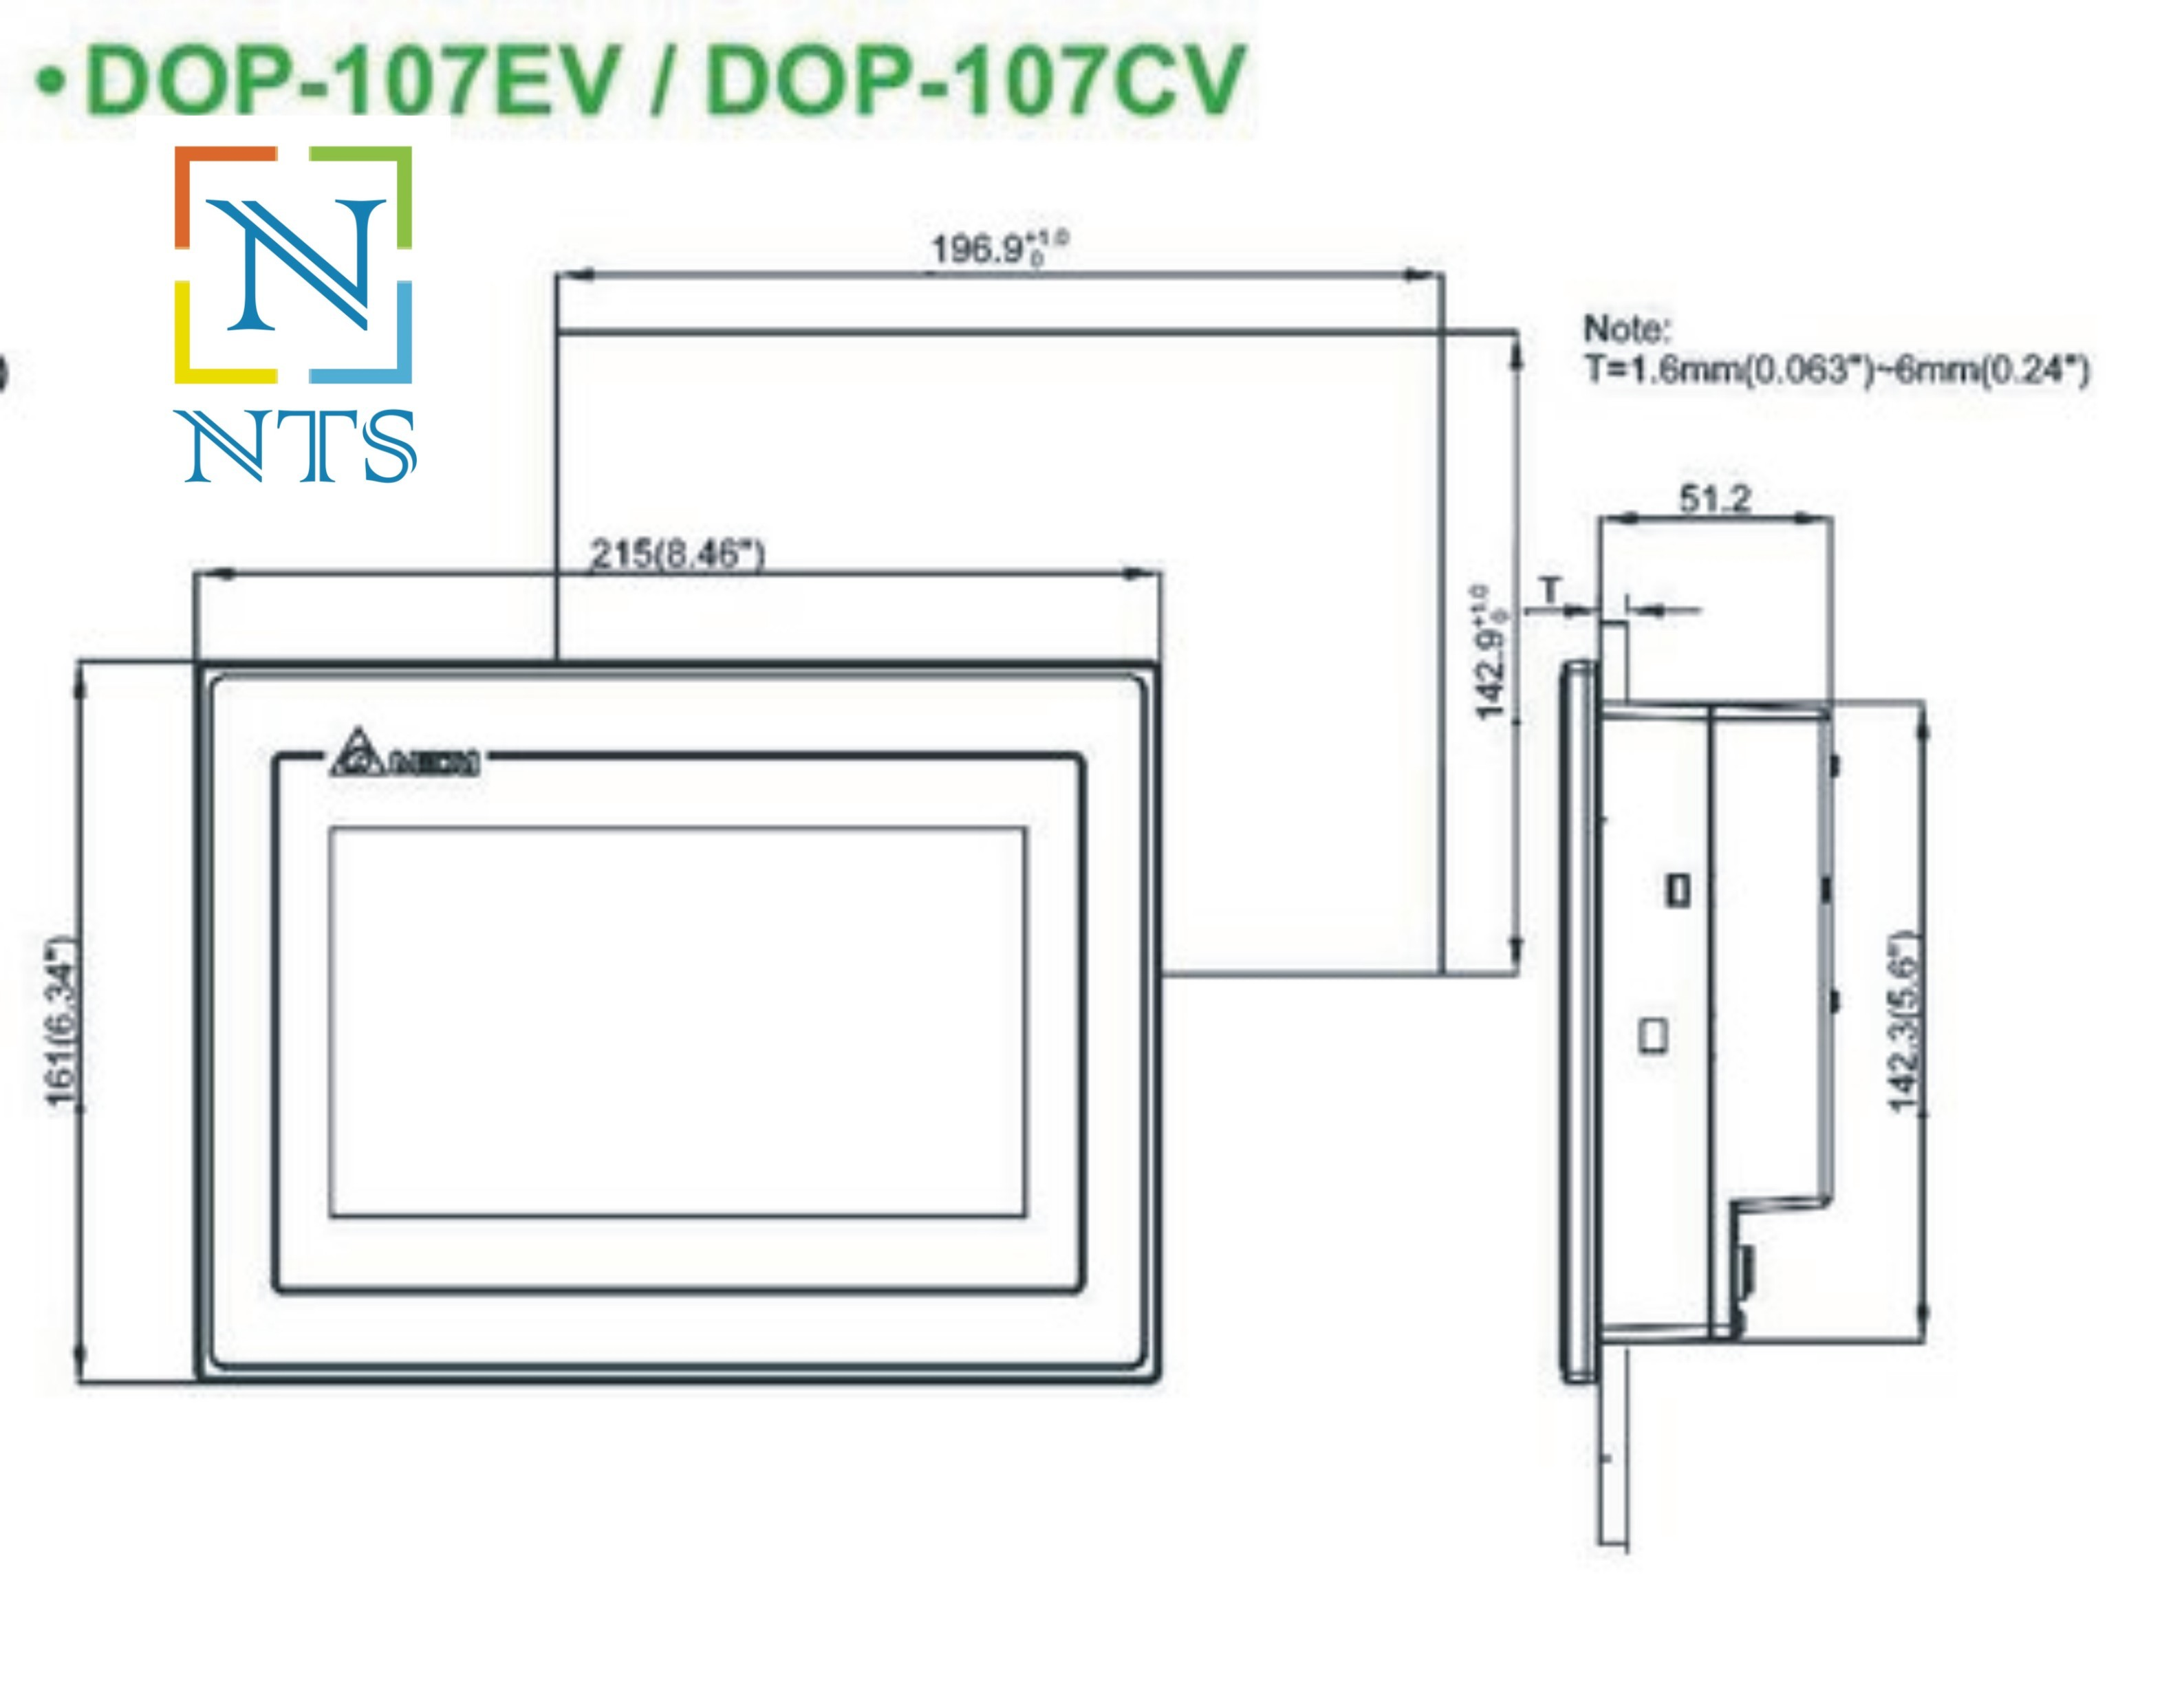 Delta DOP-107EV HMI Display